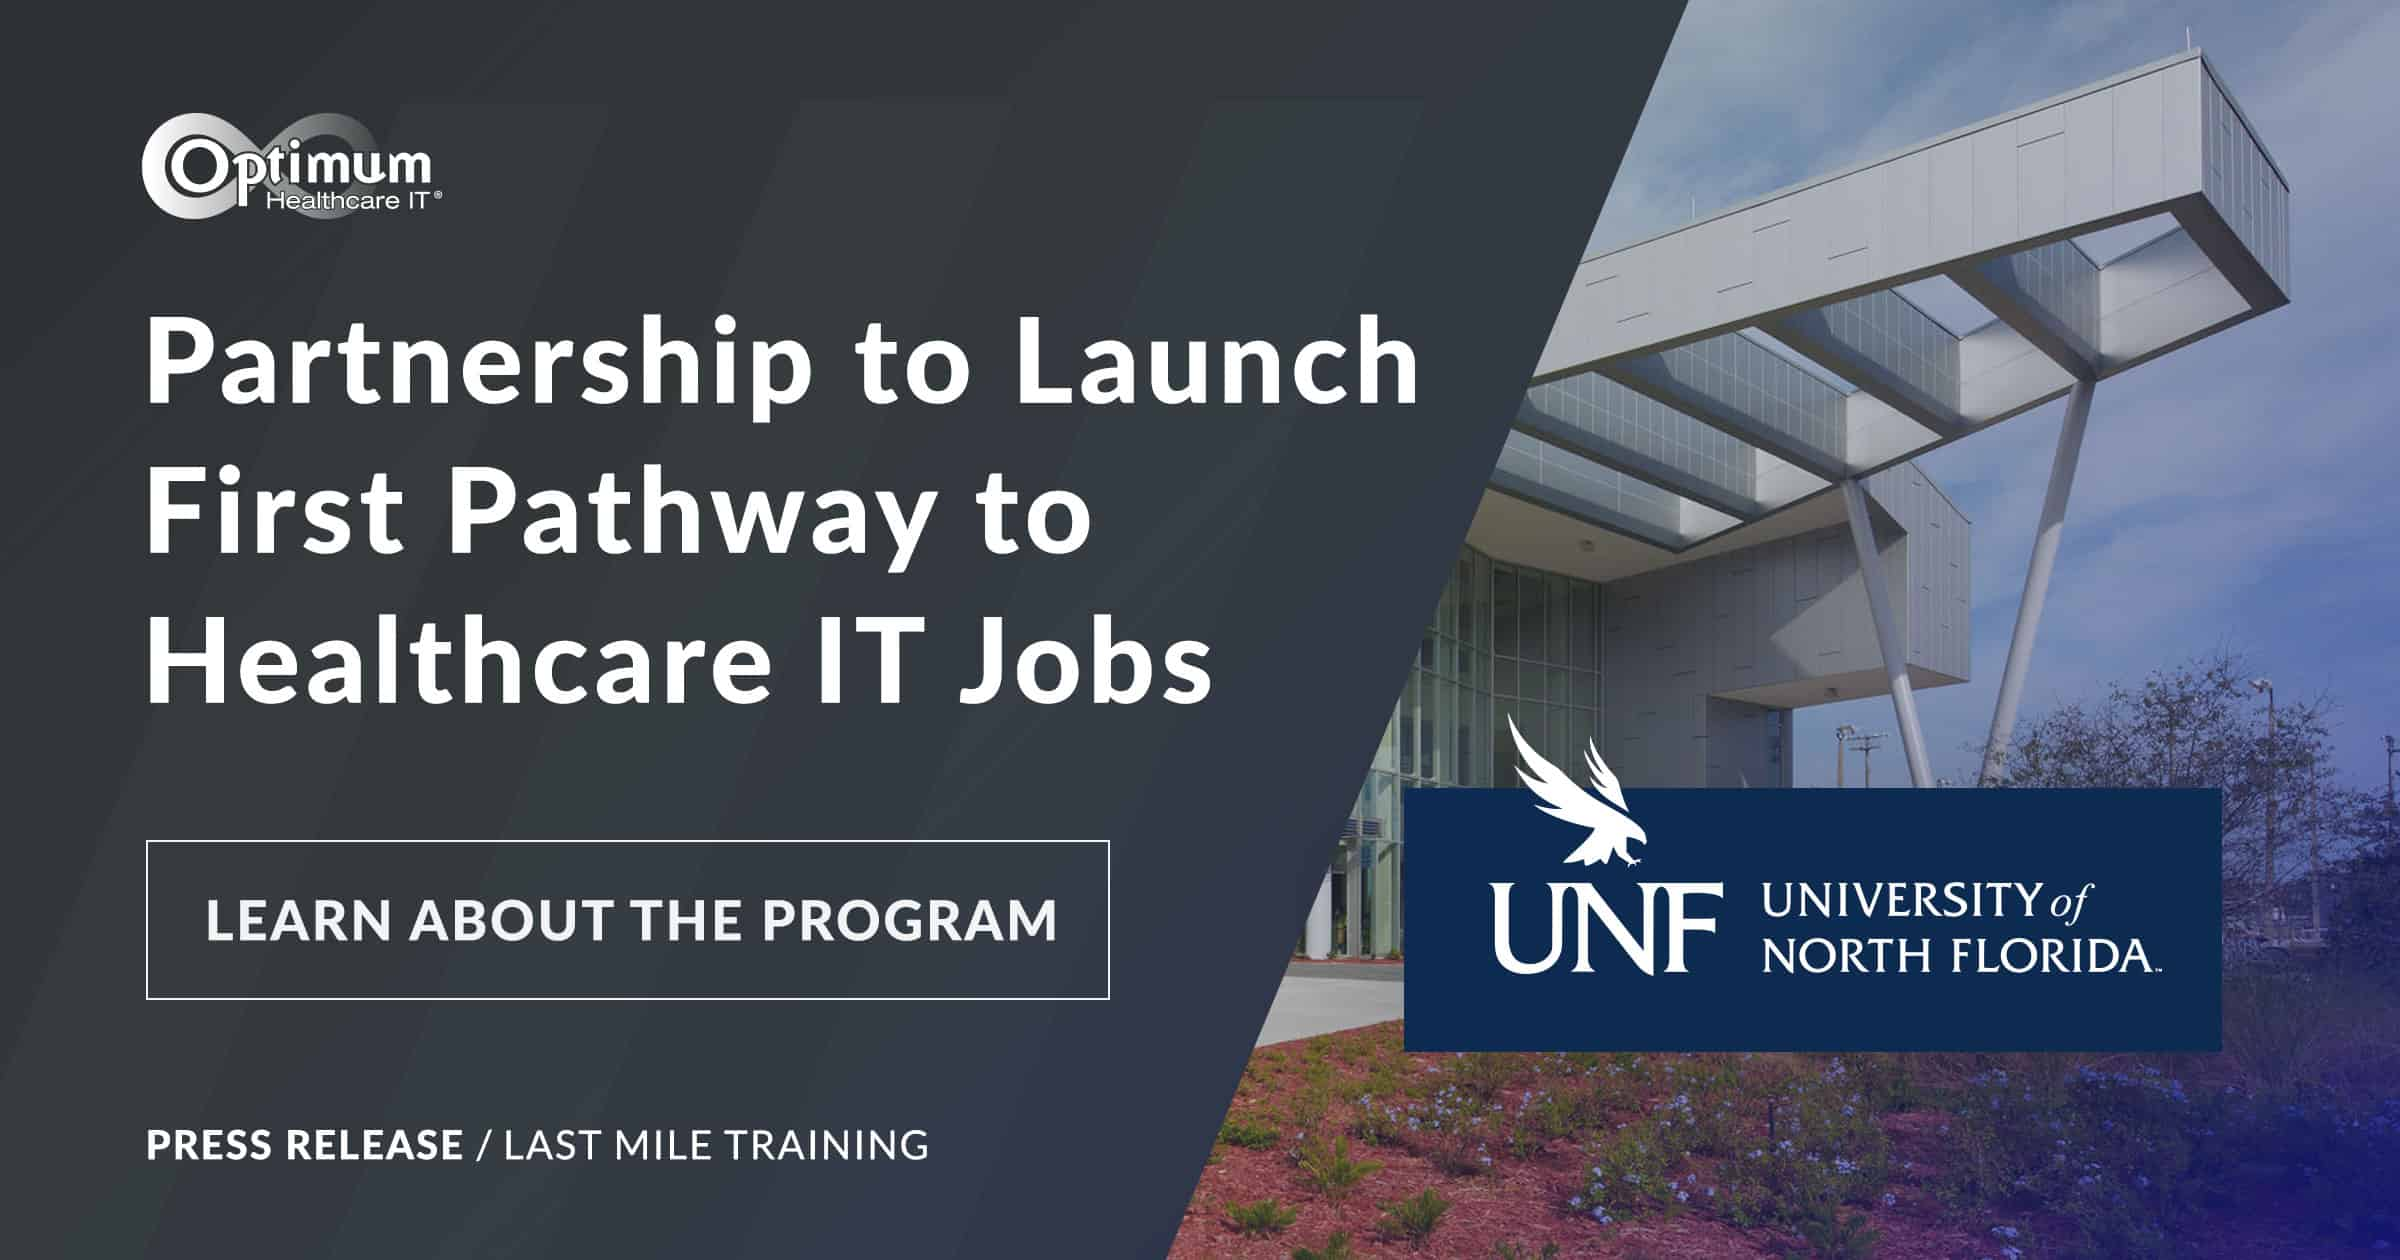 Press Release: Partnership to Launch First Pathway to Healthcare IT Jobs